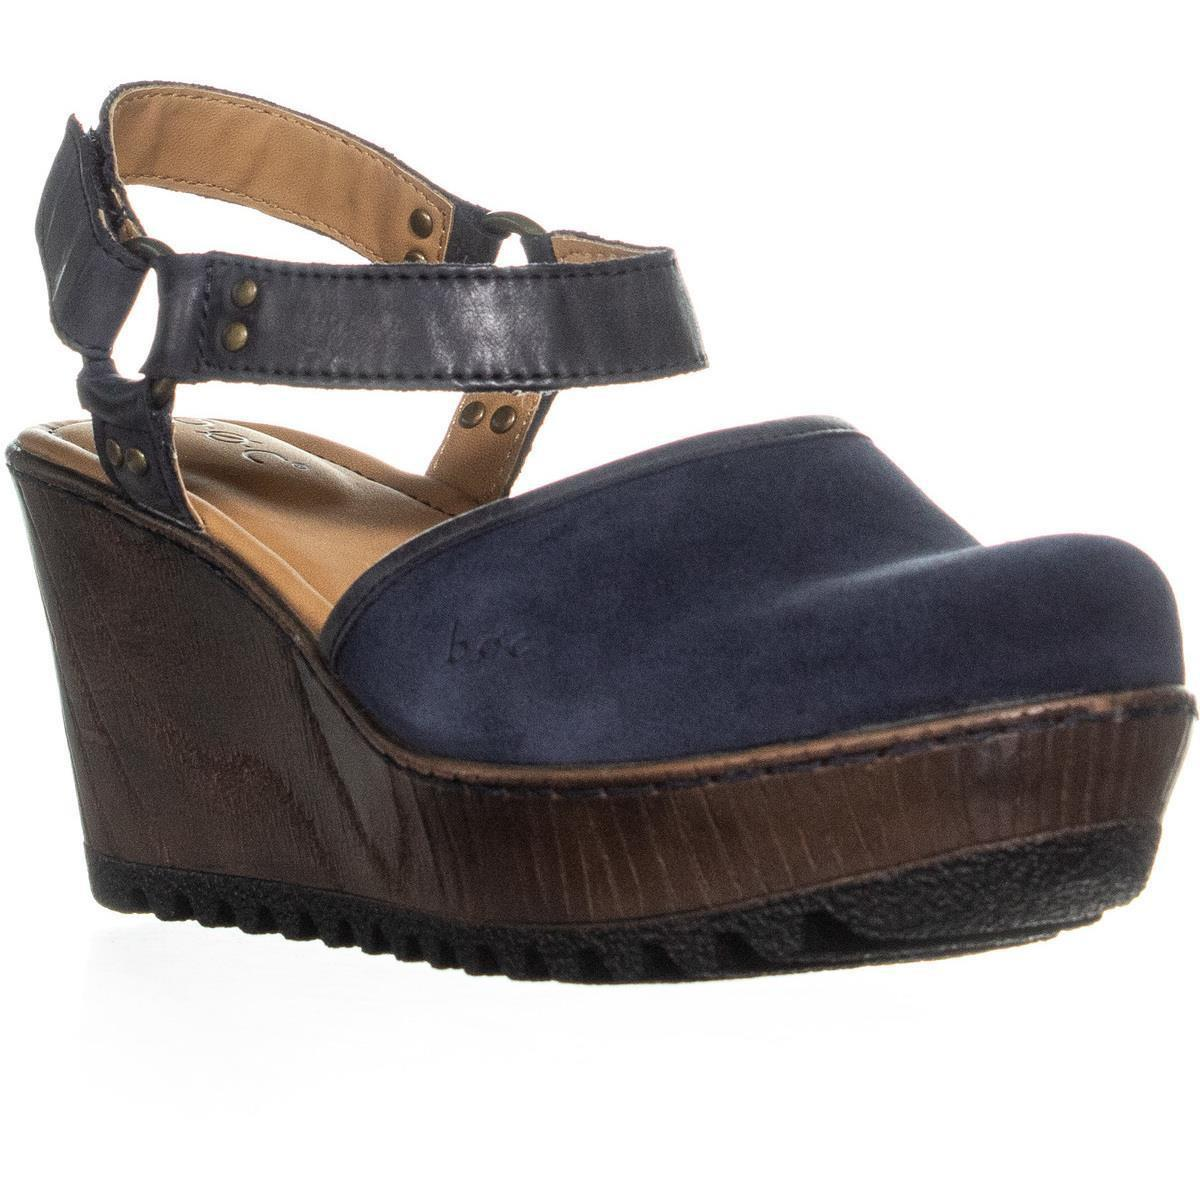 97962cee320e Lyst - Born B.o.c Rina Wedge Ankle Strap Sandals in Blue